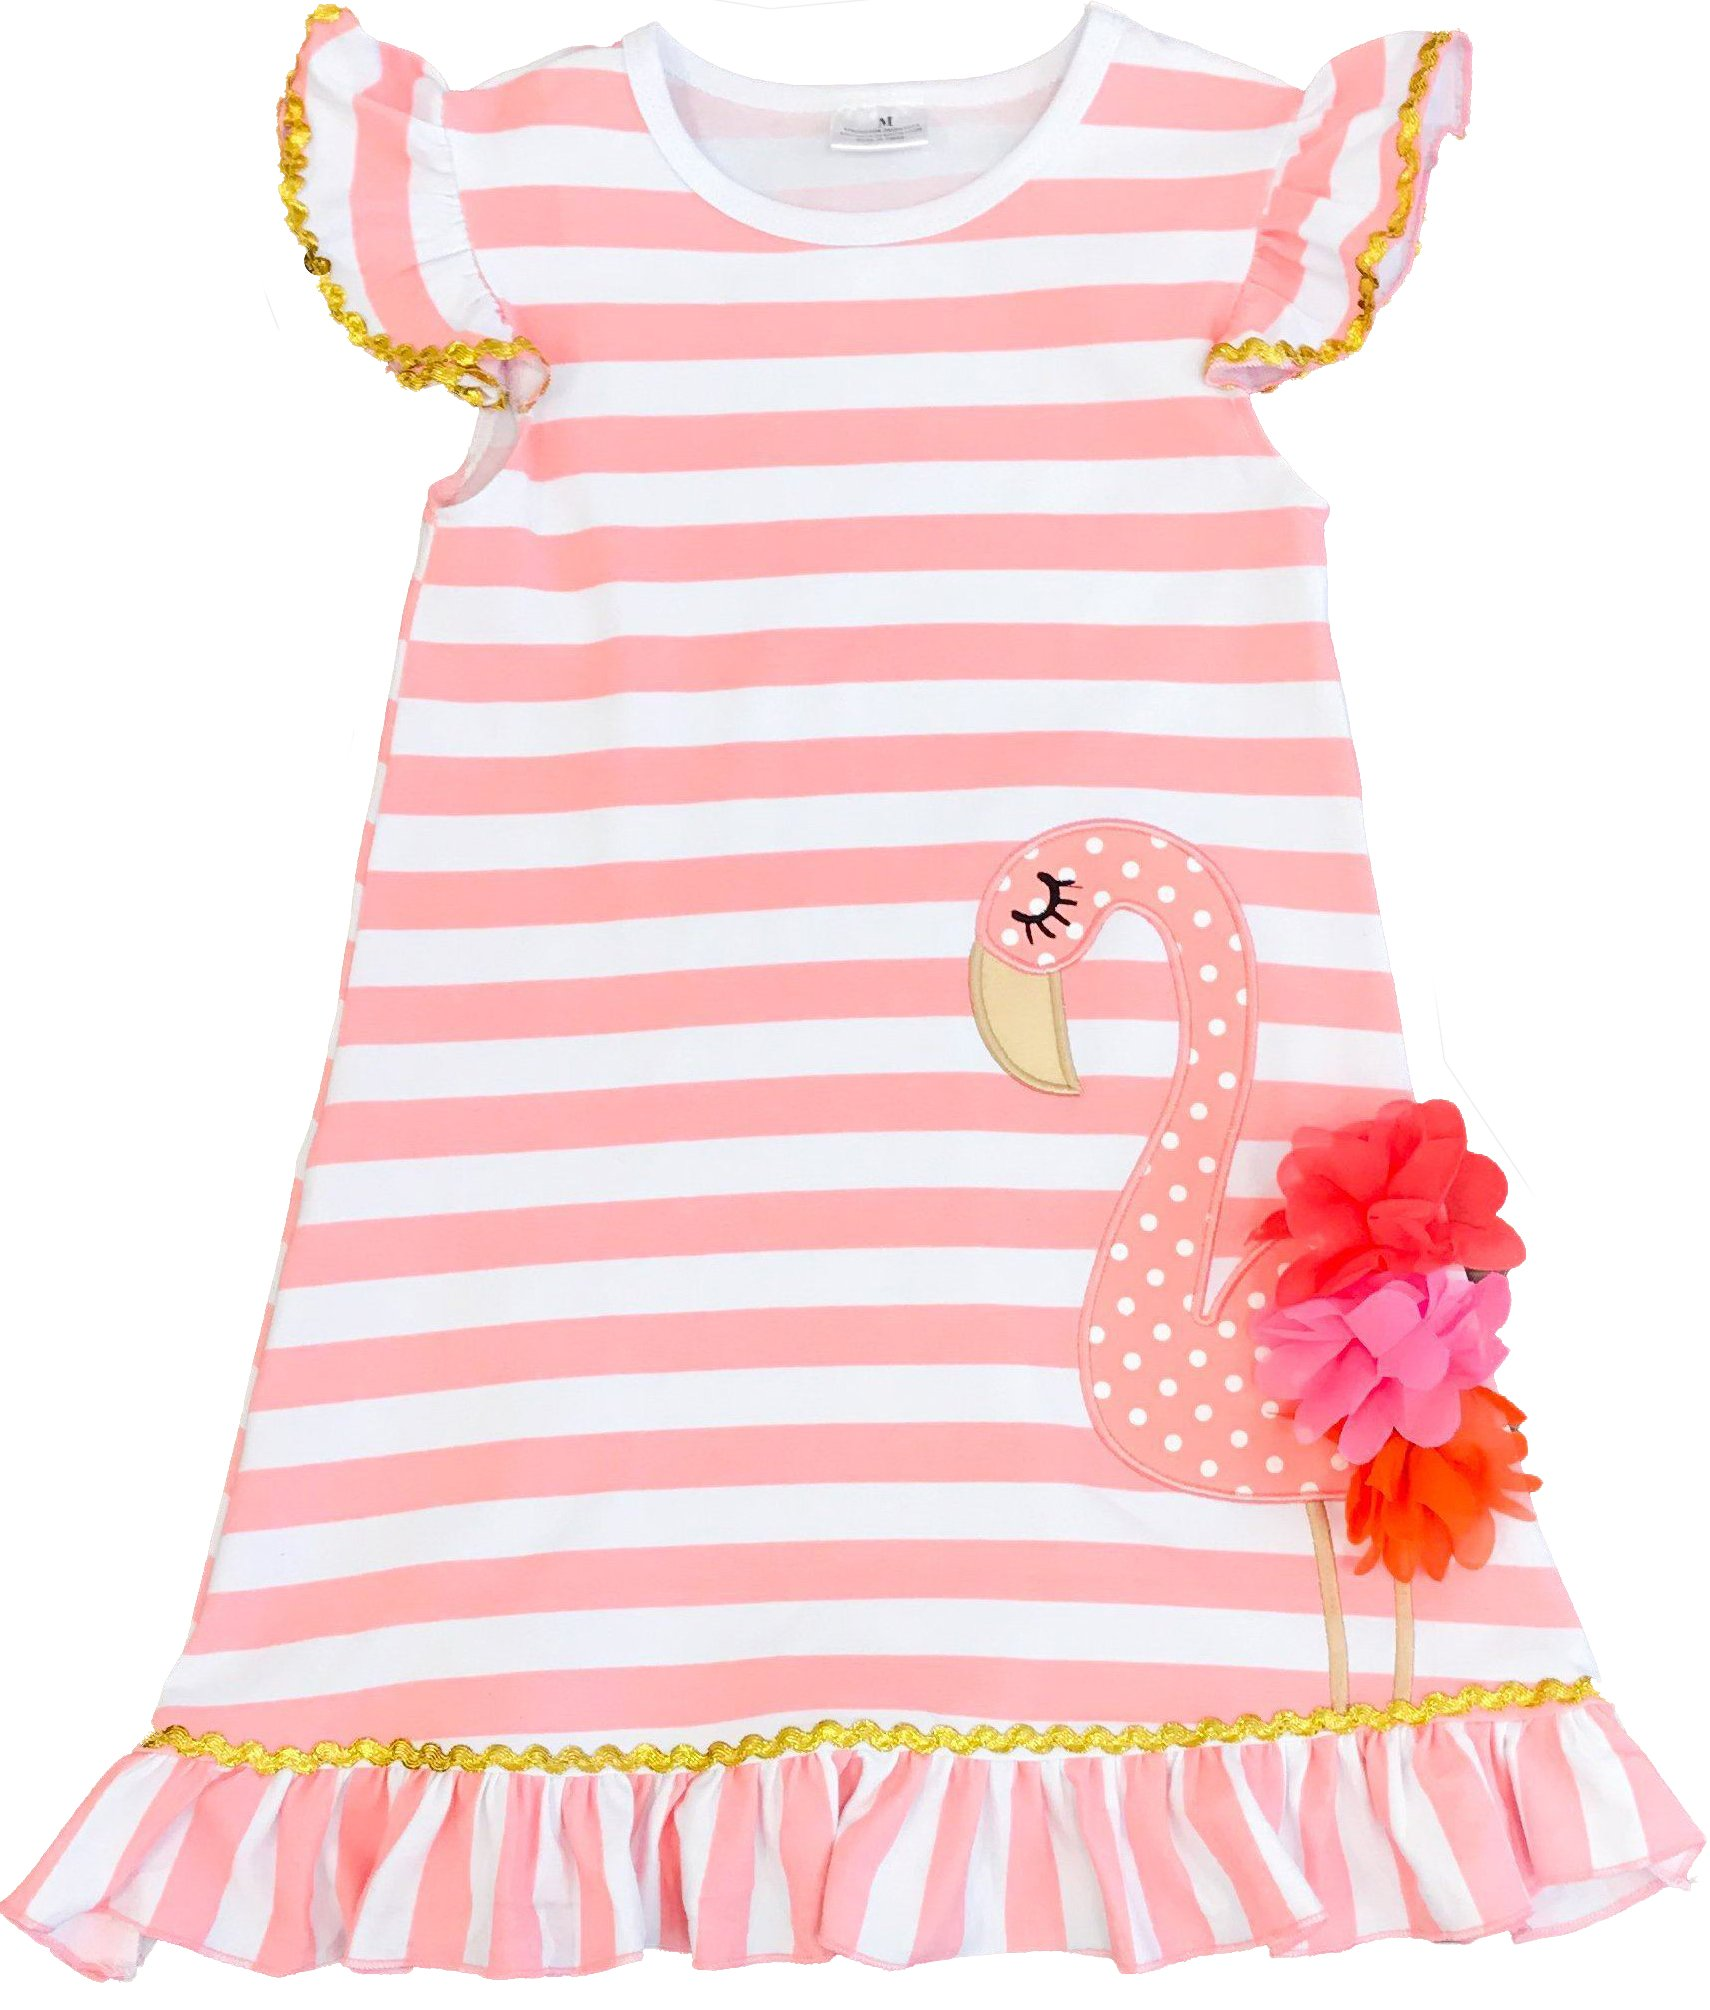 Toddler Little Girls Summer Flamingo Coral Stripes Dress 18-24M/XS